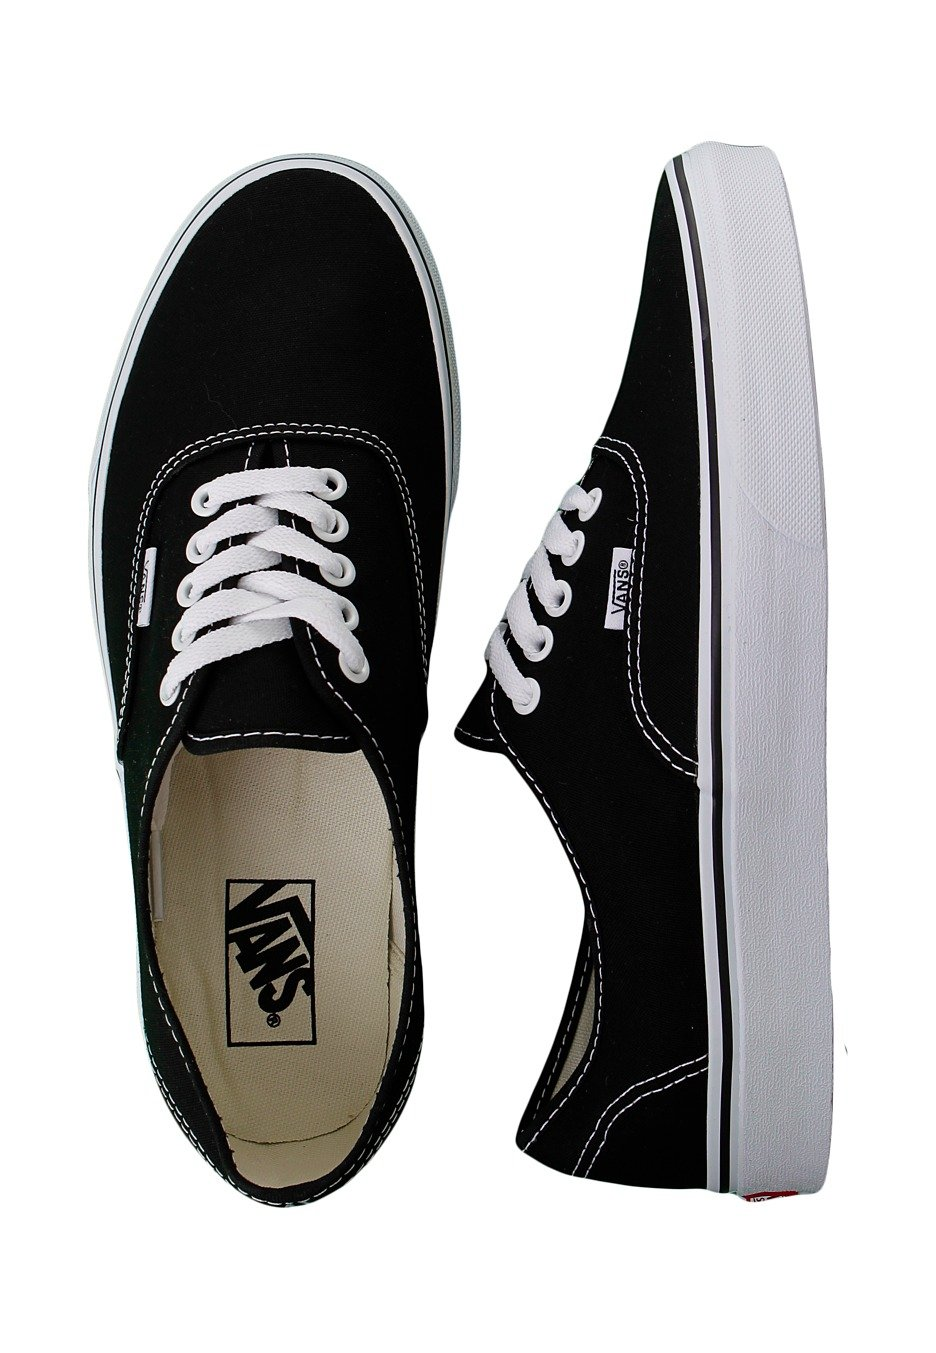 4e2989f64ed5 Vans - Authentic Black White - Shoes - Impericon.com UK